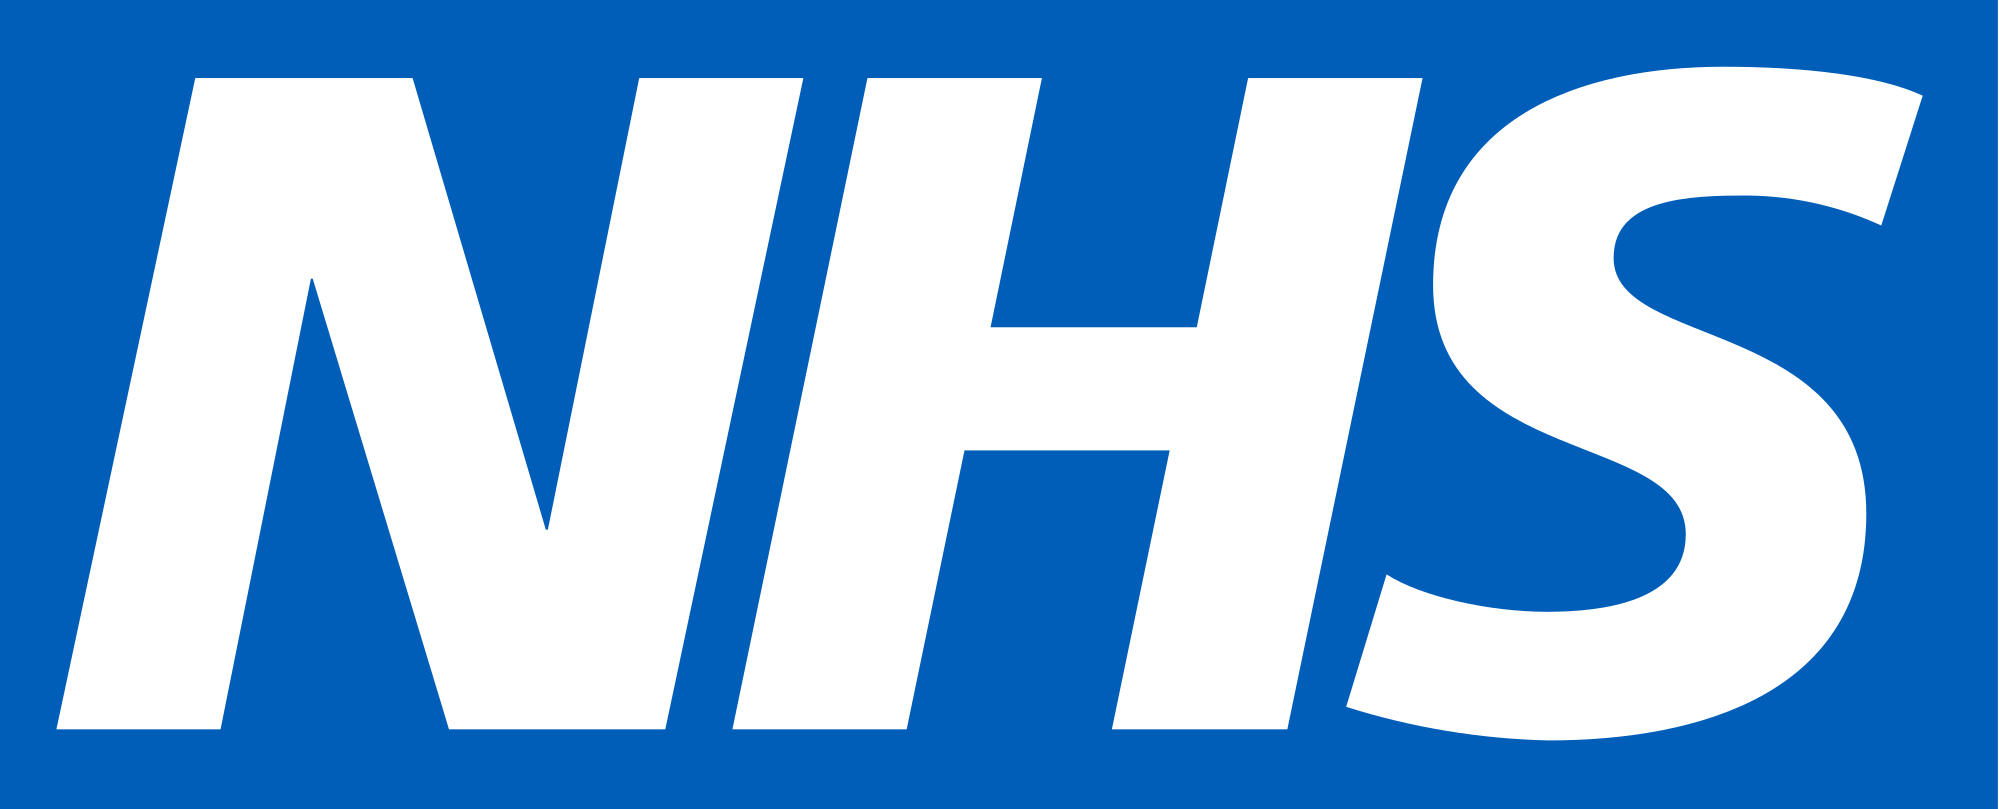 NHS The Benefits Of New Technology